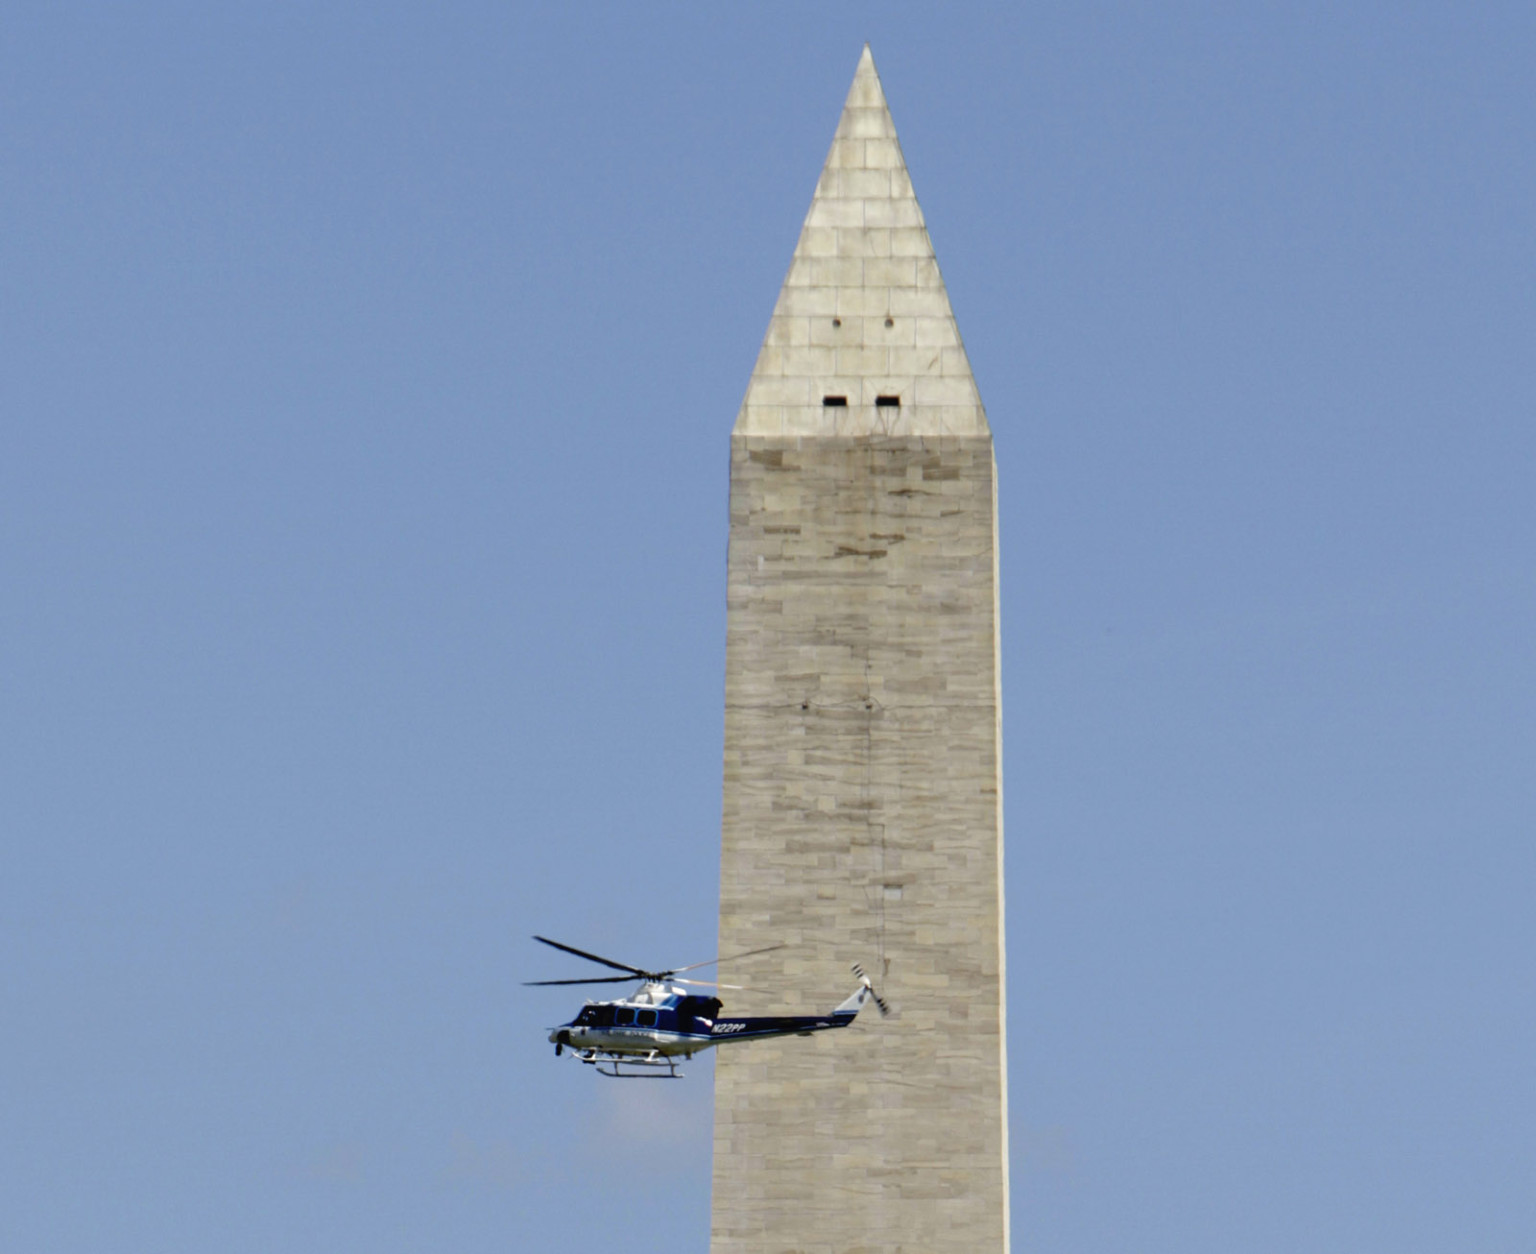 In this file photo, a U.S. Park Service helicopter flies in front of the Washington Monument in Washington, on Aug. 23, 2011, after it was evacuated following an earthquake in the Washington area. White marble and mortar on the 555-foot obelisk cracked and shook loose during the quake. Repairs to the stone cost $15 million but didn't address the elevator that takes tourists up to the observation deck inside. National Park Service officials believe that damage from the quake is likely contributing to ongoing mechanical problems with the elevator. (AP Photo/Jacquelyn Martin)